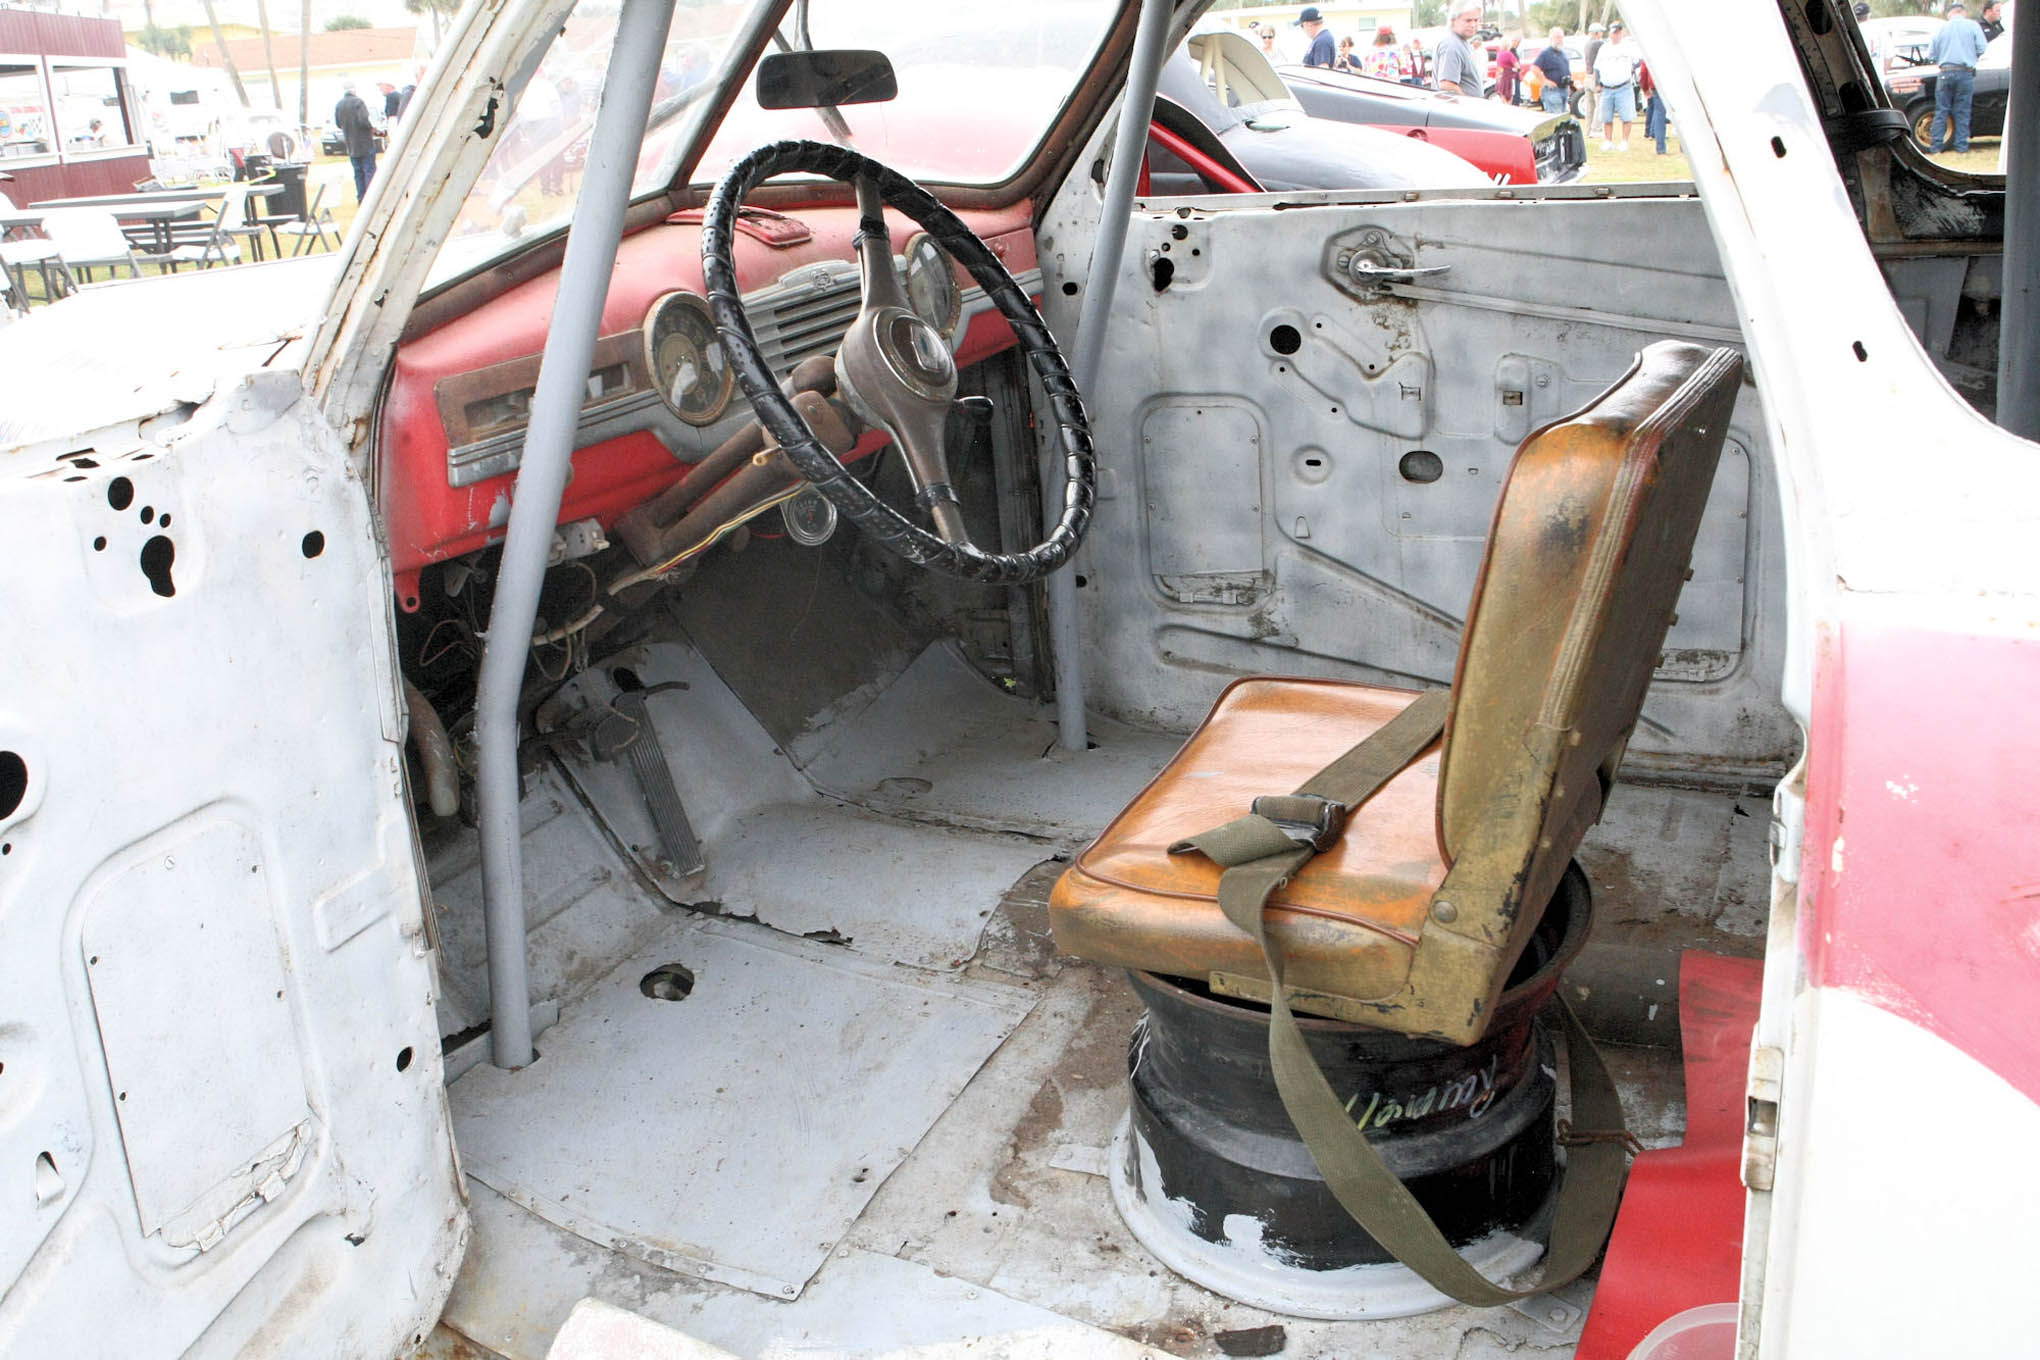 Look how far safety features have come. One can only imagine sitting in this car, let alone racing with it.